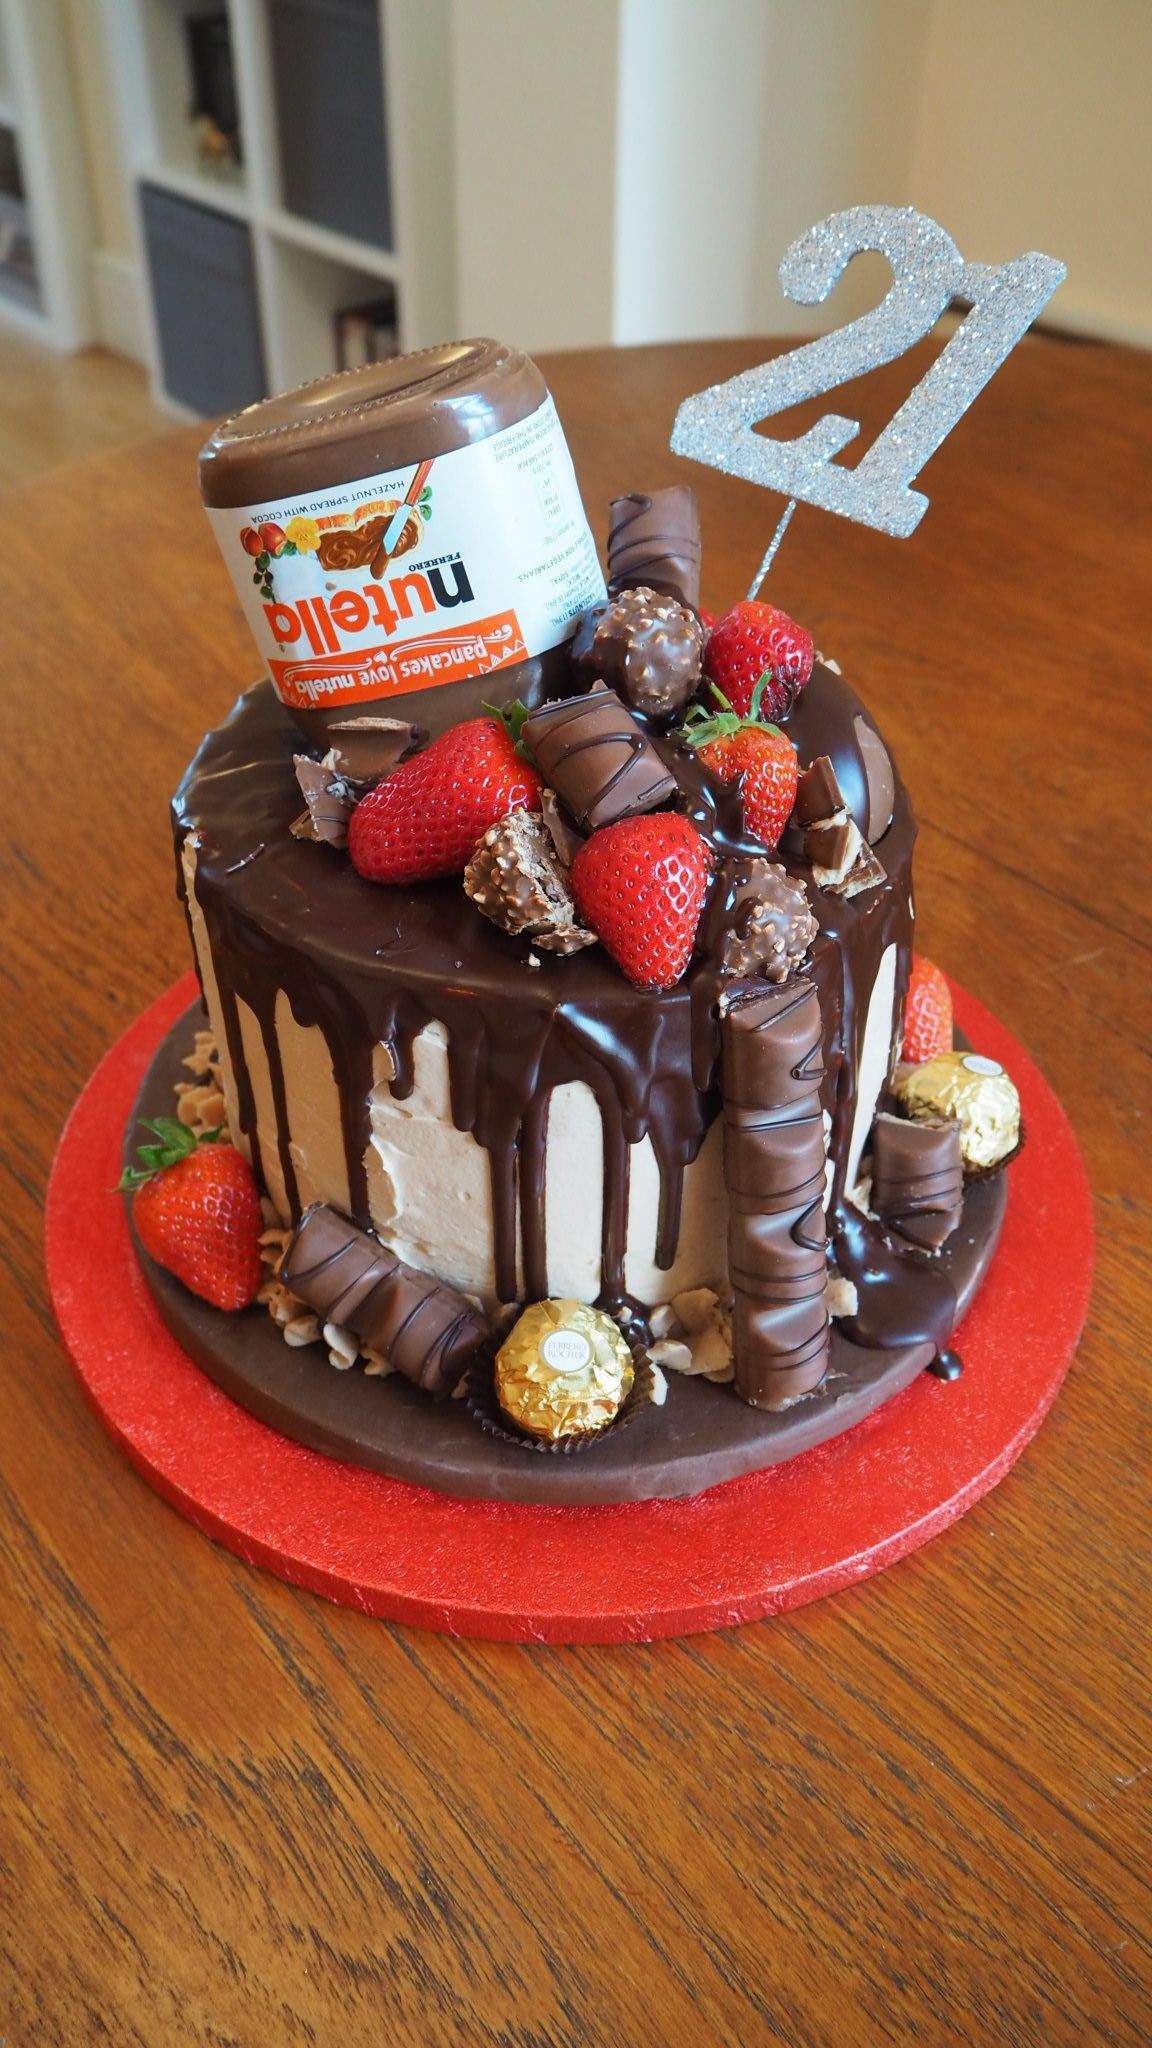 Best ideas about Birthday Cake Photo . Save or Pin Nutella Chocolate Drip Cake Now.